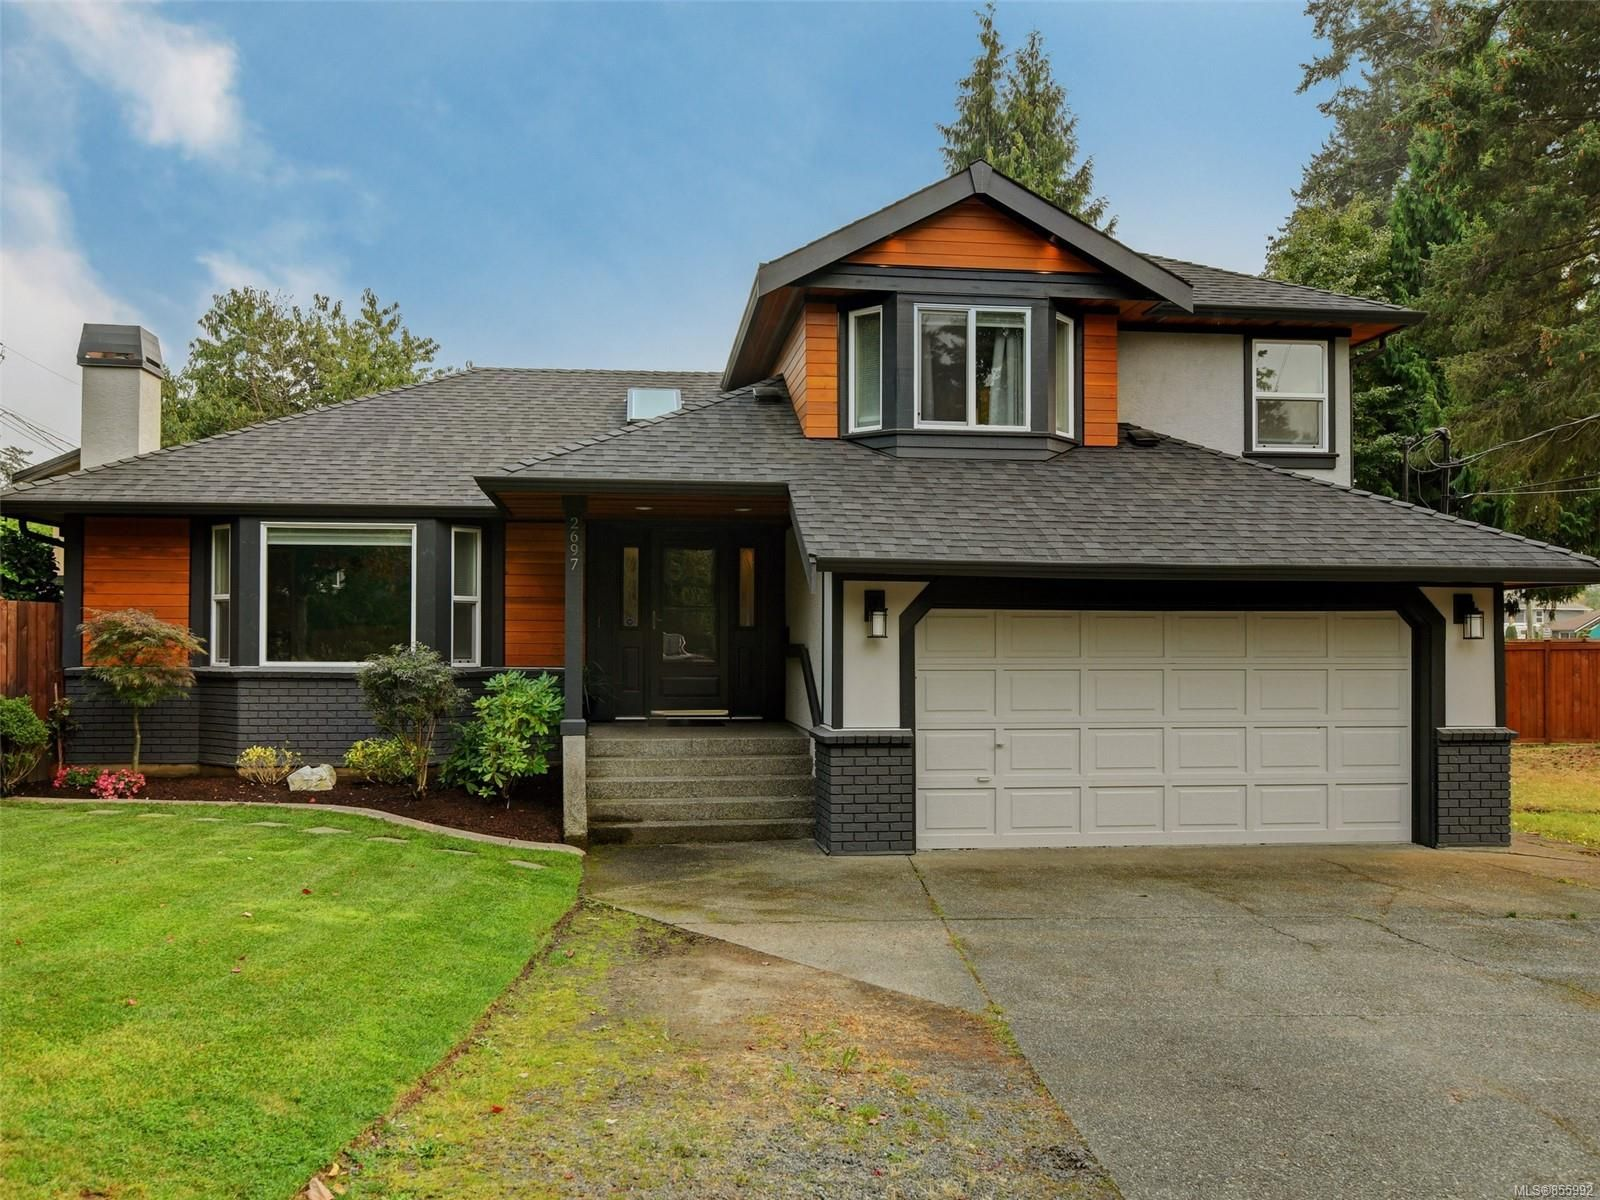 Main Photo: 2697 Silverstone Way in : La Atkins House for sale (Langford)  : MLS®# 855992